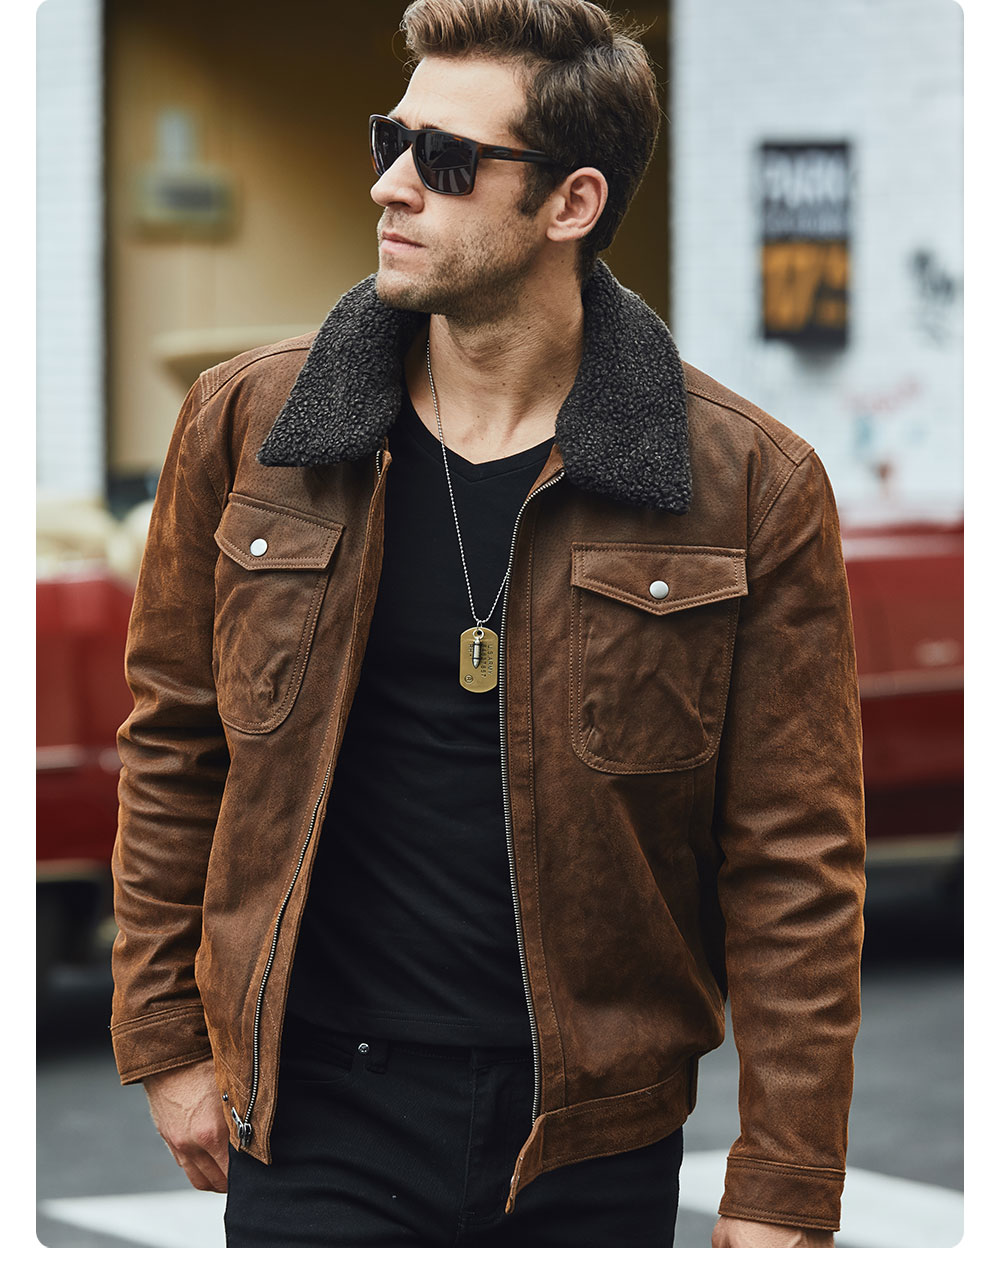 H65654670b431485280ed23a4bee053b4Q FLAVOR Men's Real Leather Jacket Genuine Leather jacket with faux fur collar male Motorcycle warm coat Genuine Leather Jacket